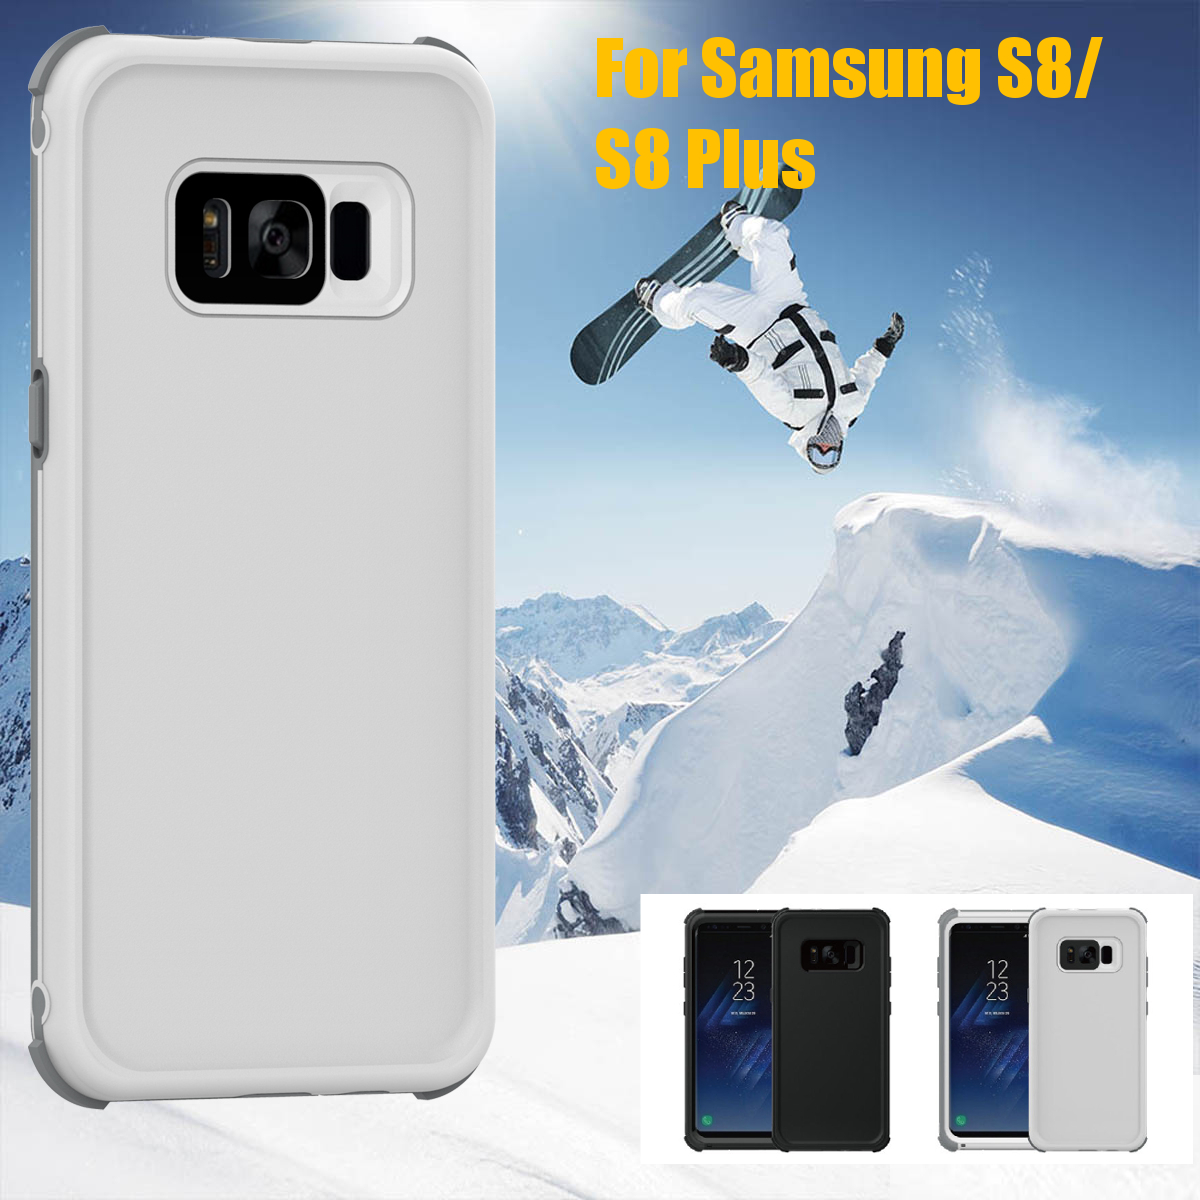 2 In 1 Waterproof Snowproof Dustproof Shockproof PC PET TPU Case for Samsung Galaxy S8 5.8''